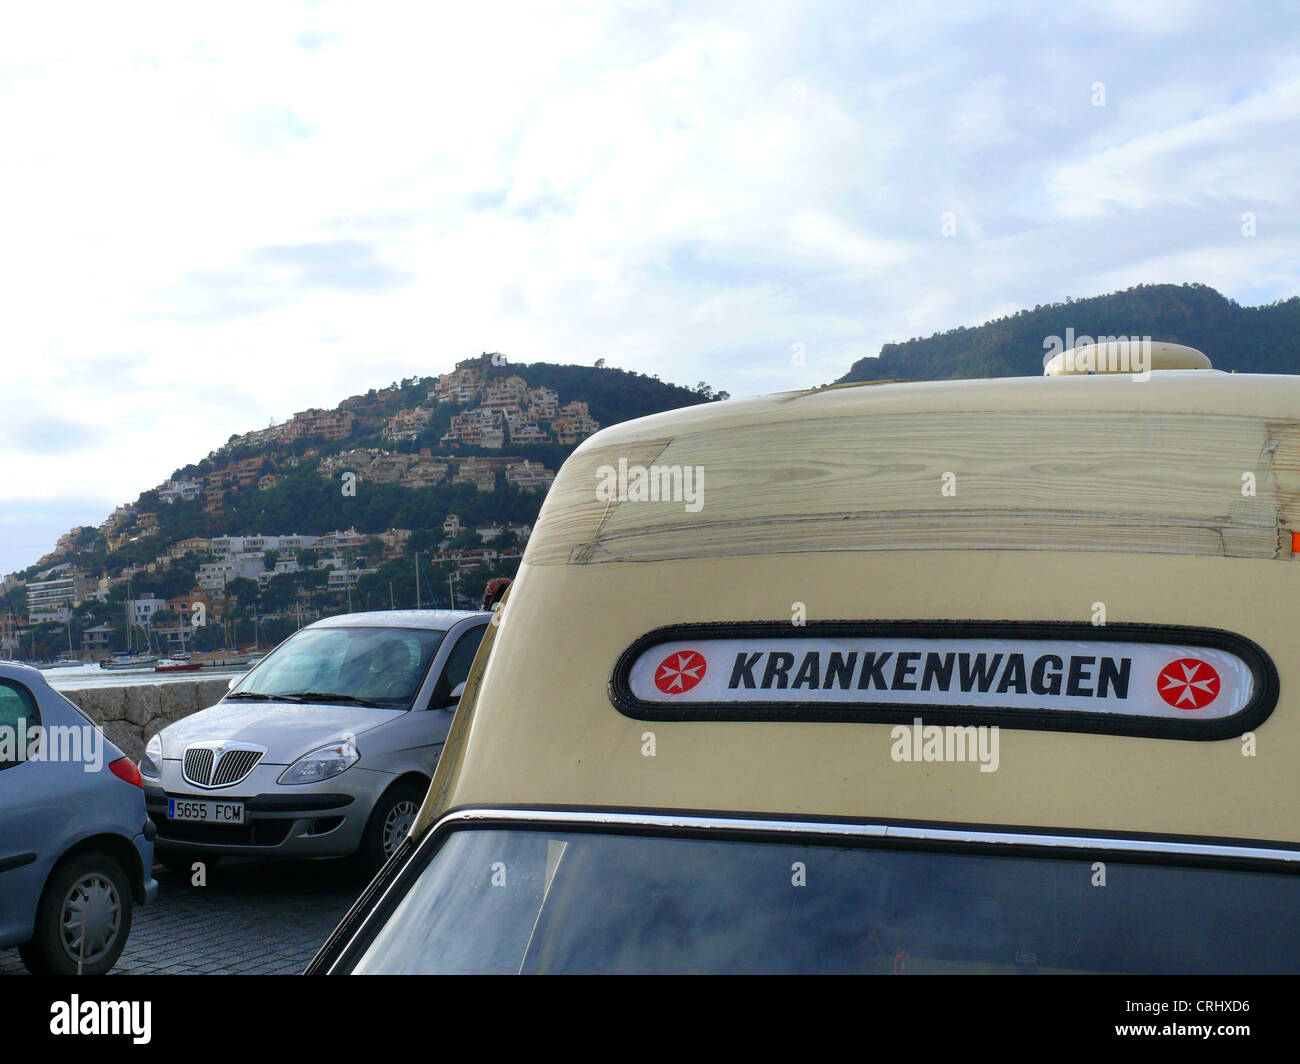 dated German ambulance car parking at harbour, Spain, Balearen, Majorca, Port Andratx - Stock Image